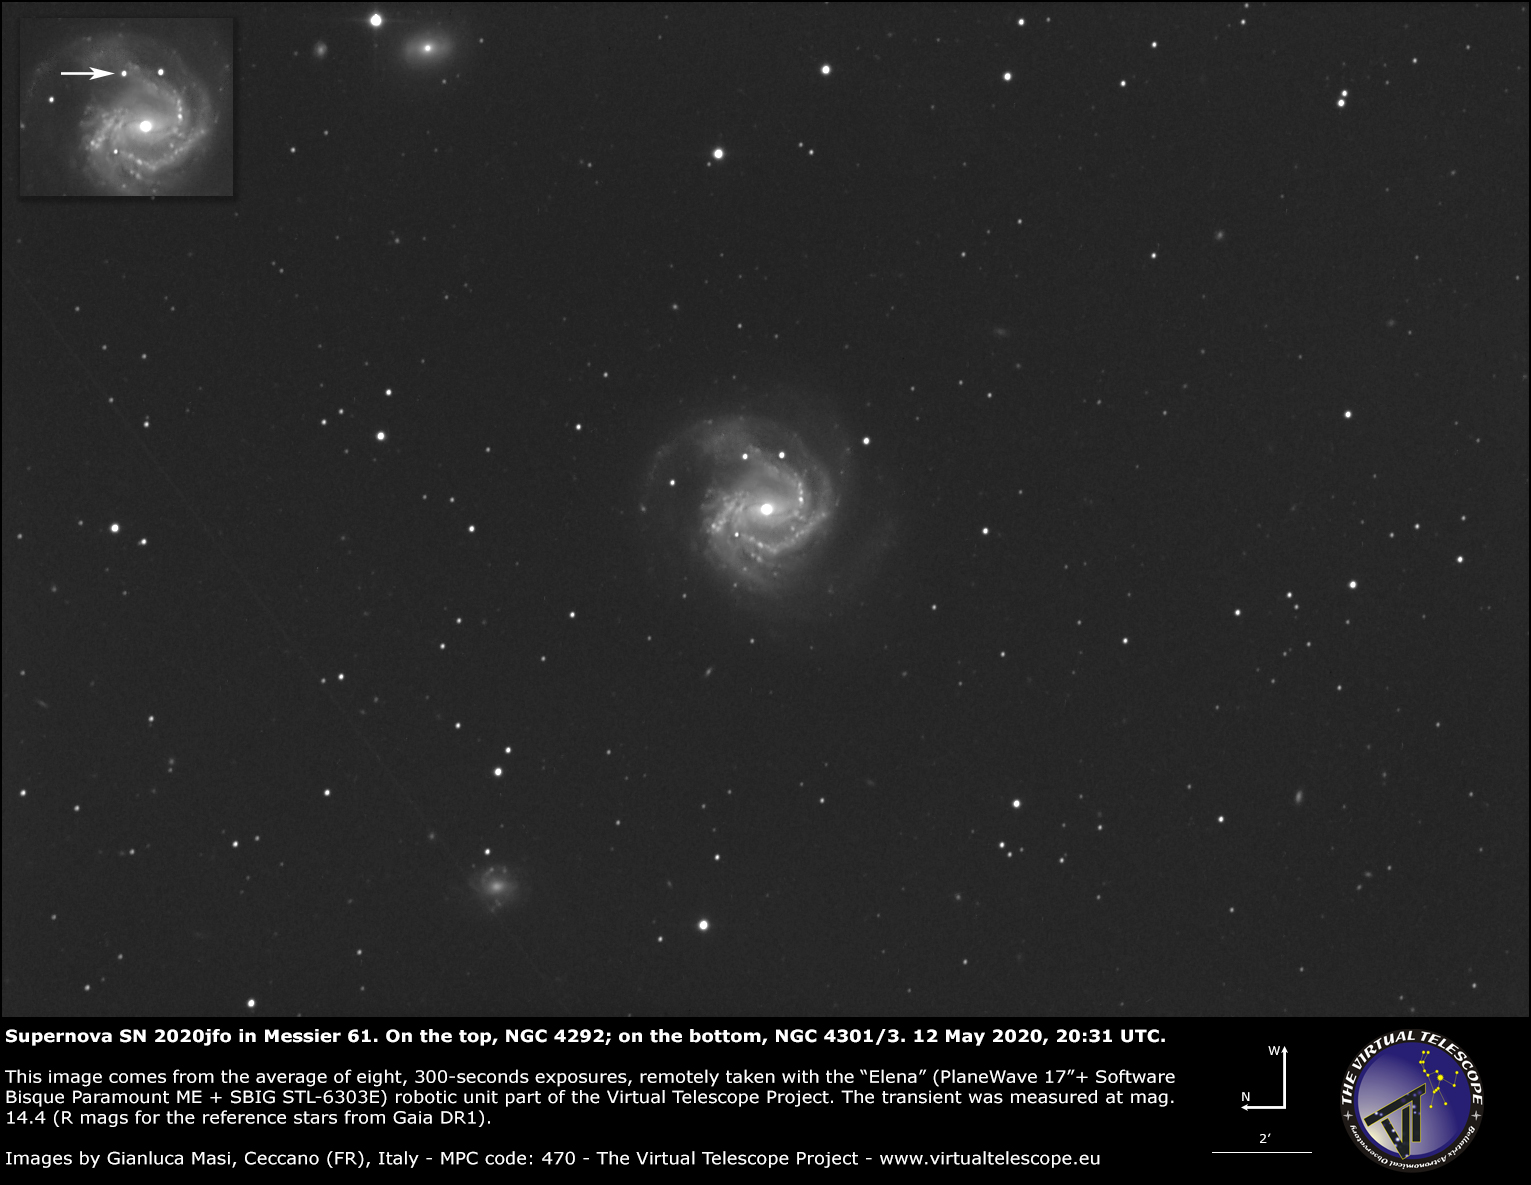 Supernova SN 2020jfo in Messier 61. 12 May 2020.